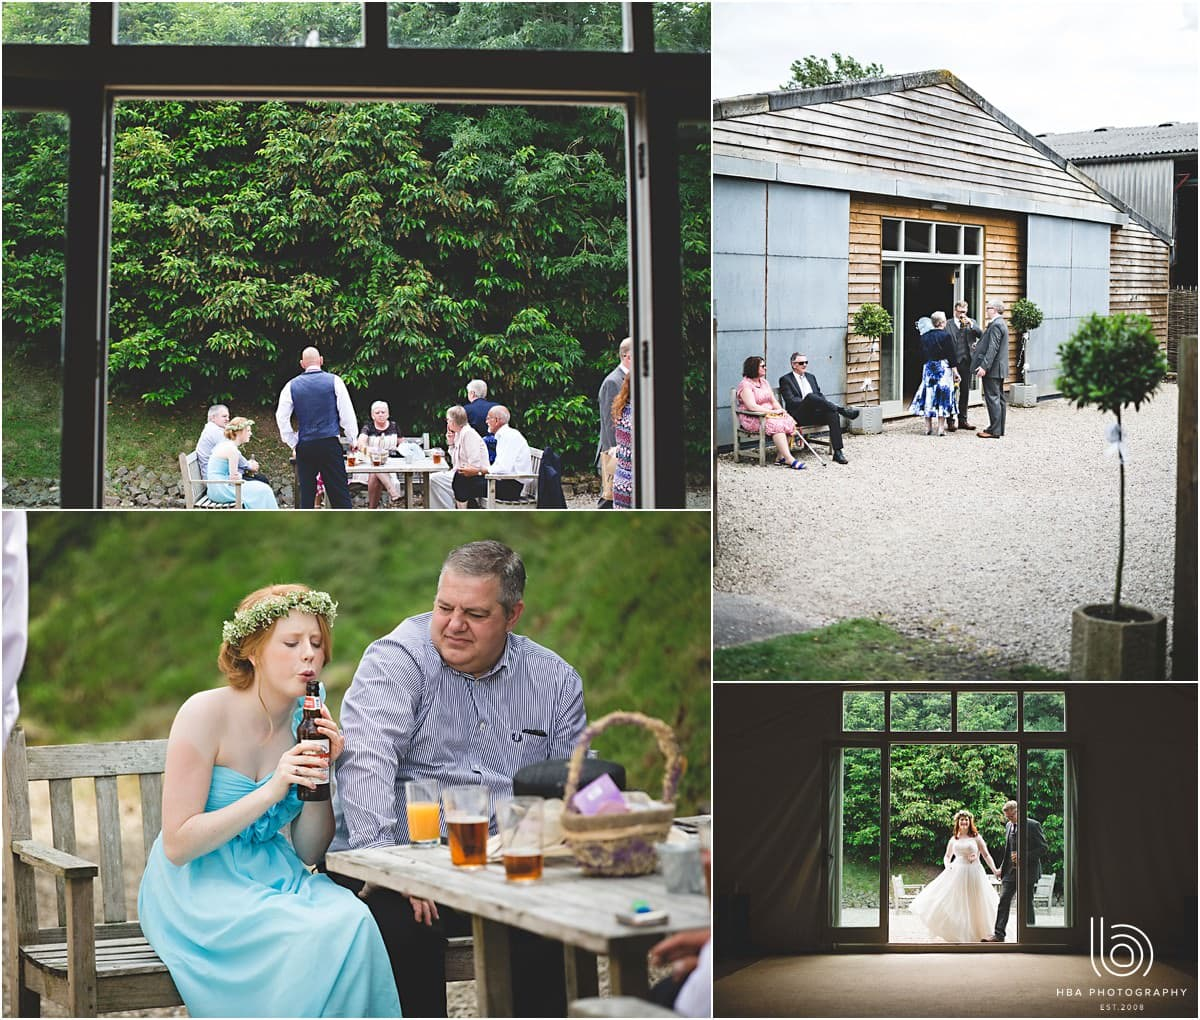 photos of all the guests enjoying the sunshine on the wedding day before the wedding breakfast